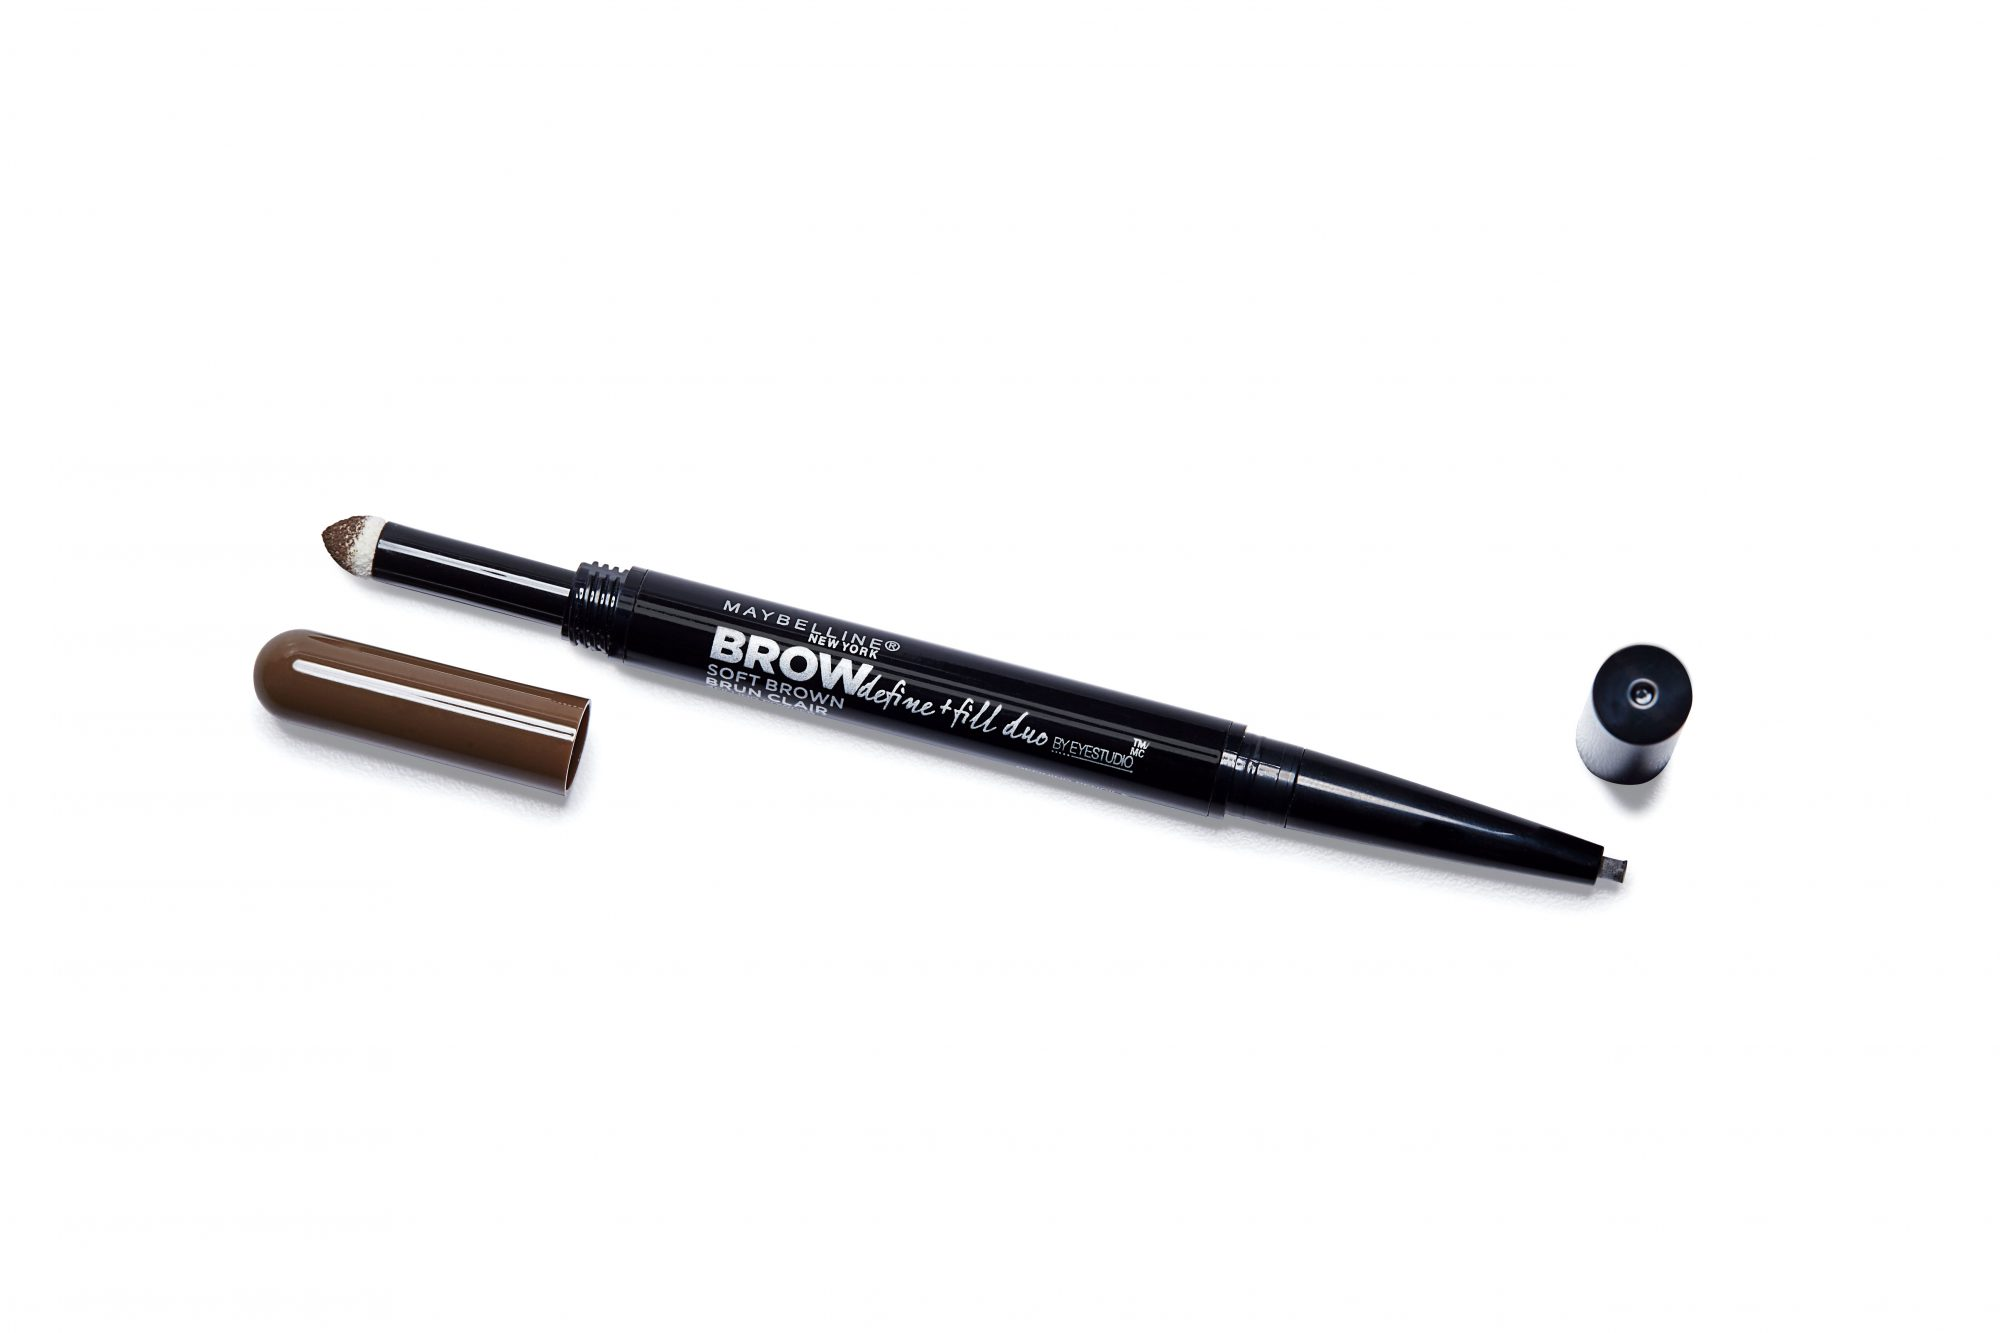 Maybelline Brow Define + Fill Duo